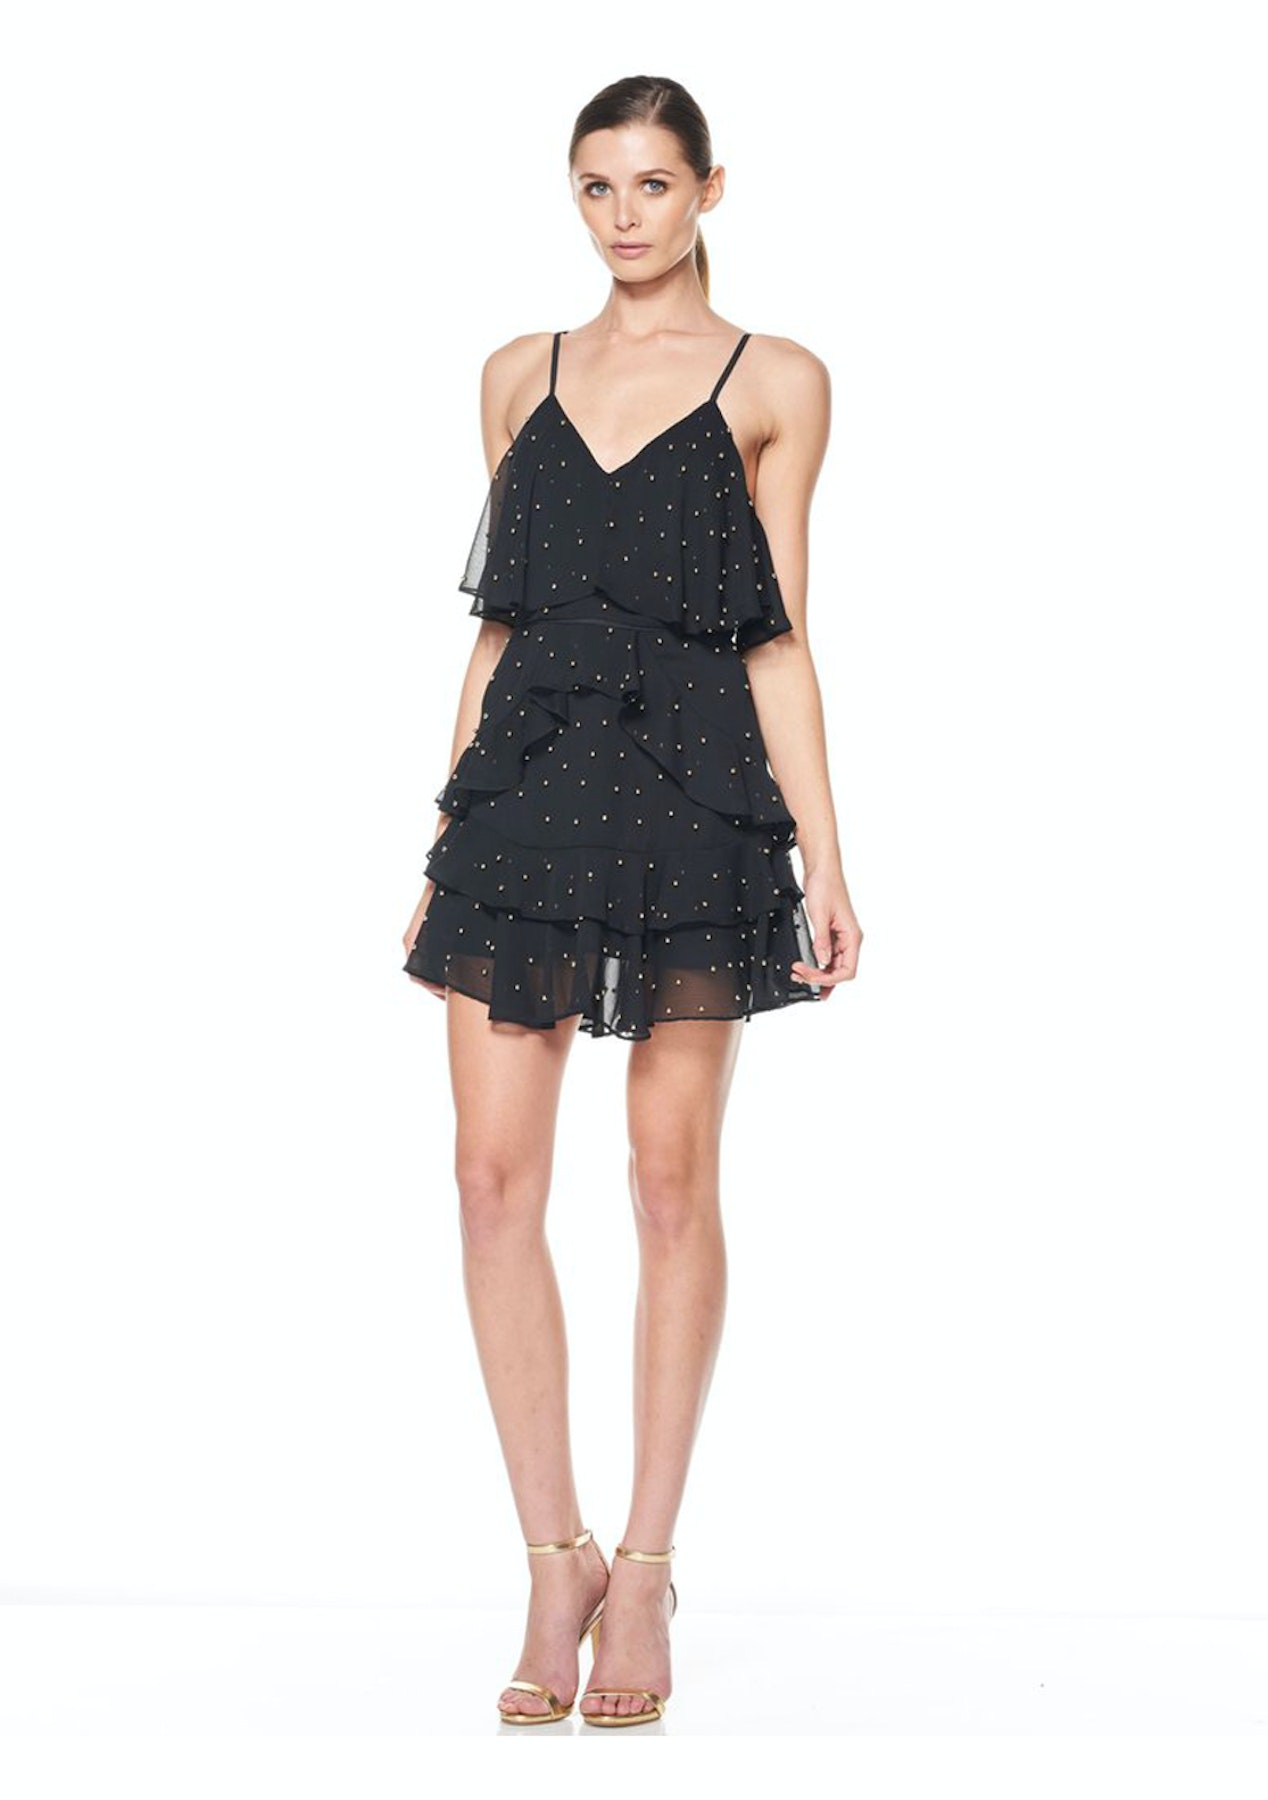 La Maison Talulah - Queen Of The Night Mini Dress - Black With Gold Ball  Sequin - Australian Designer Outlet - Onceit 71e784f41